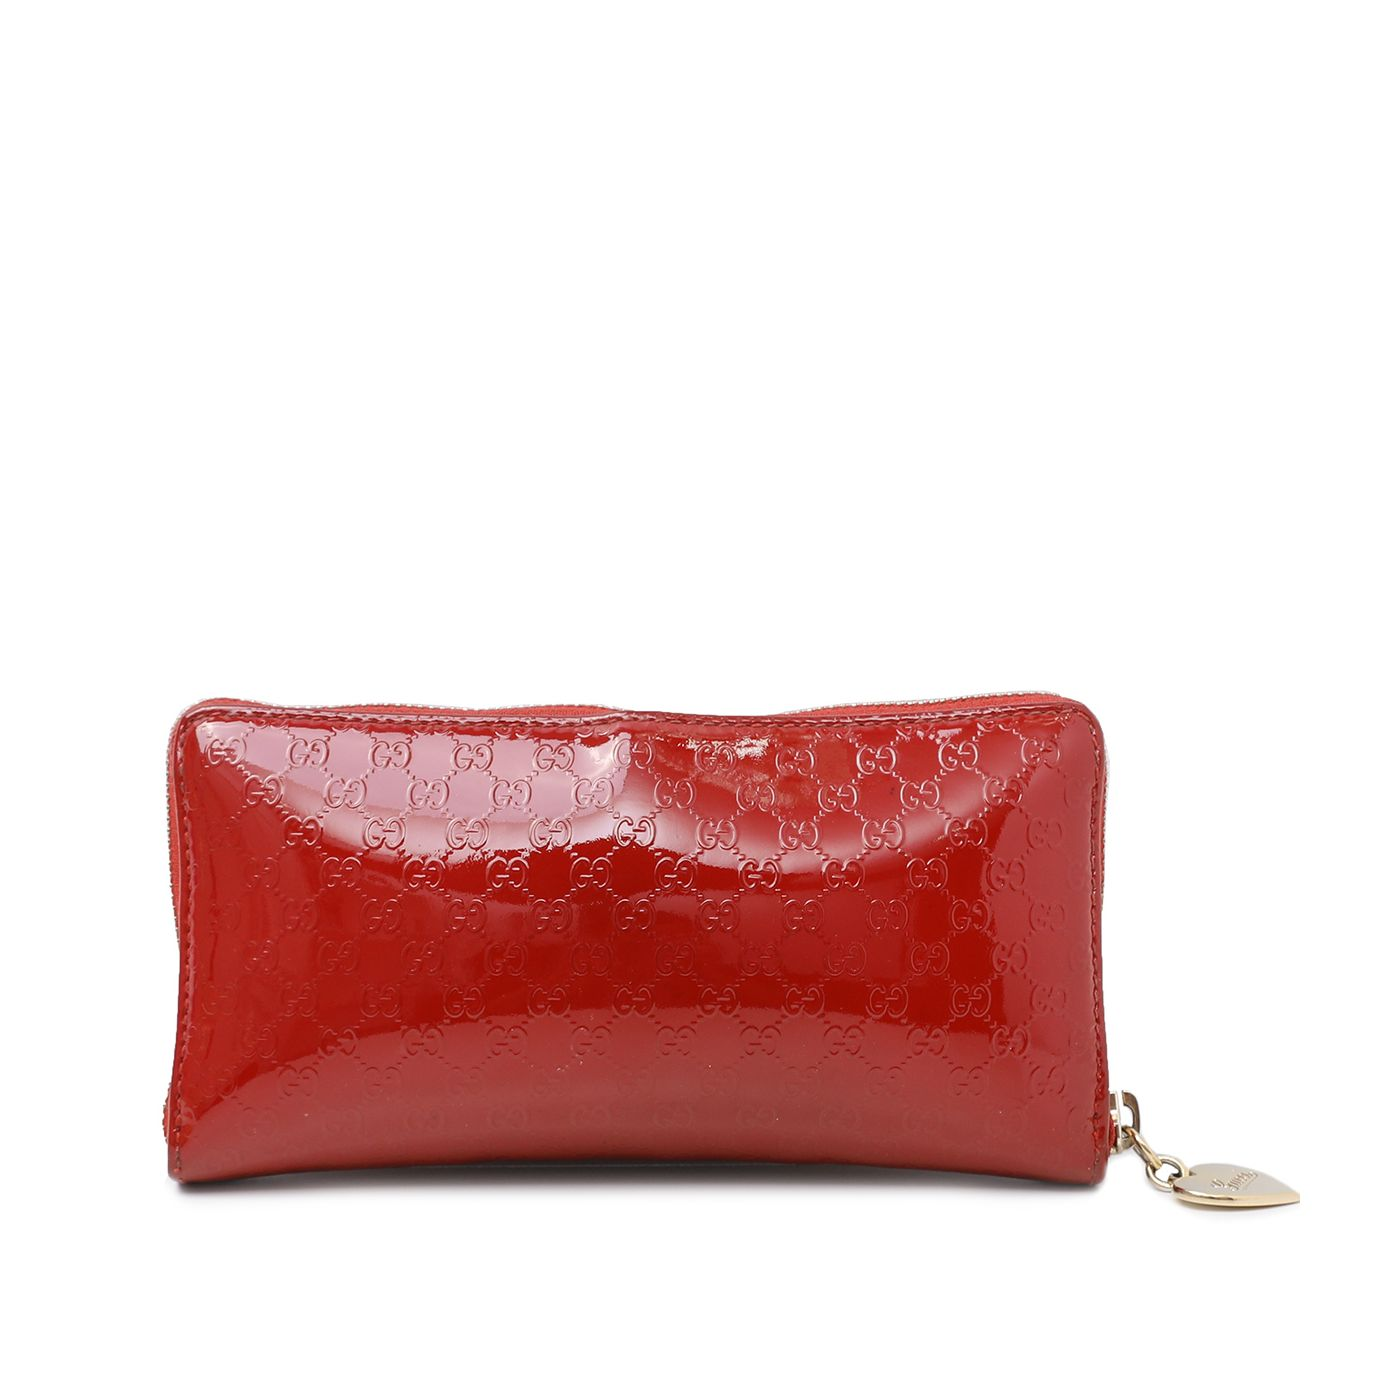 Gucci microguccissima heart zip around wallet red